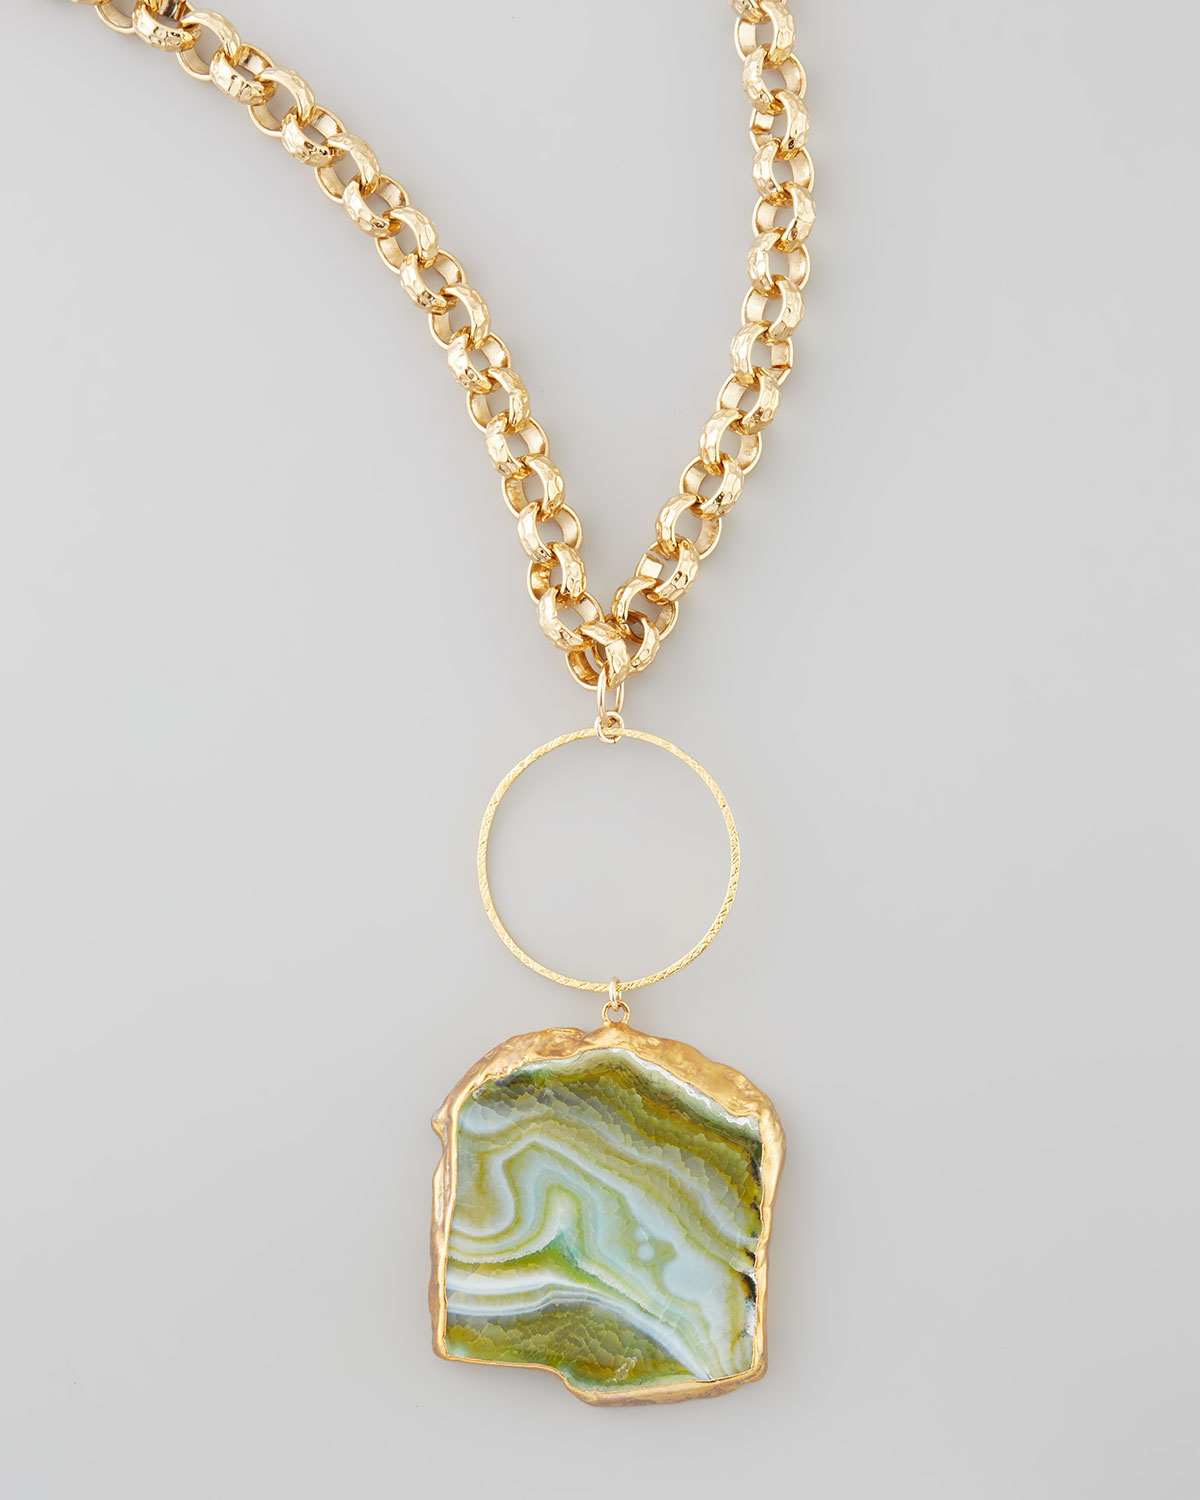 Lyst devon leigh hammered agate pendant necklace in green gallery aloadofball Choice Image